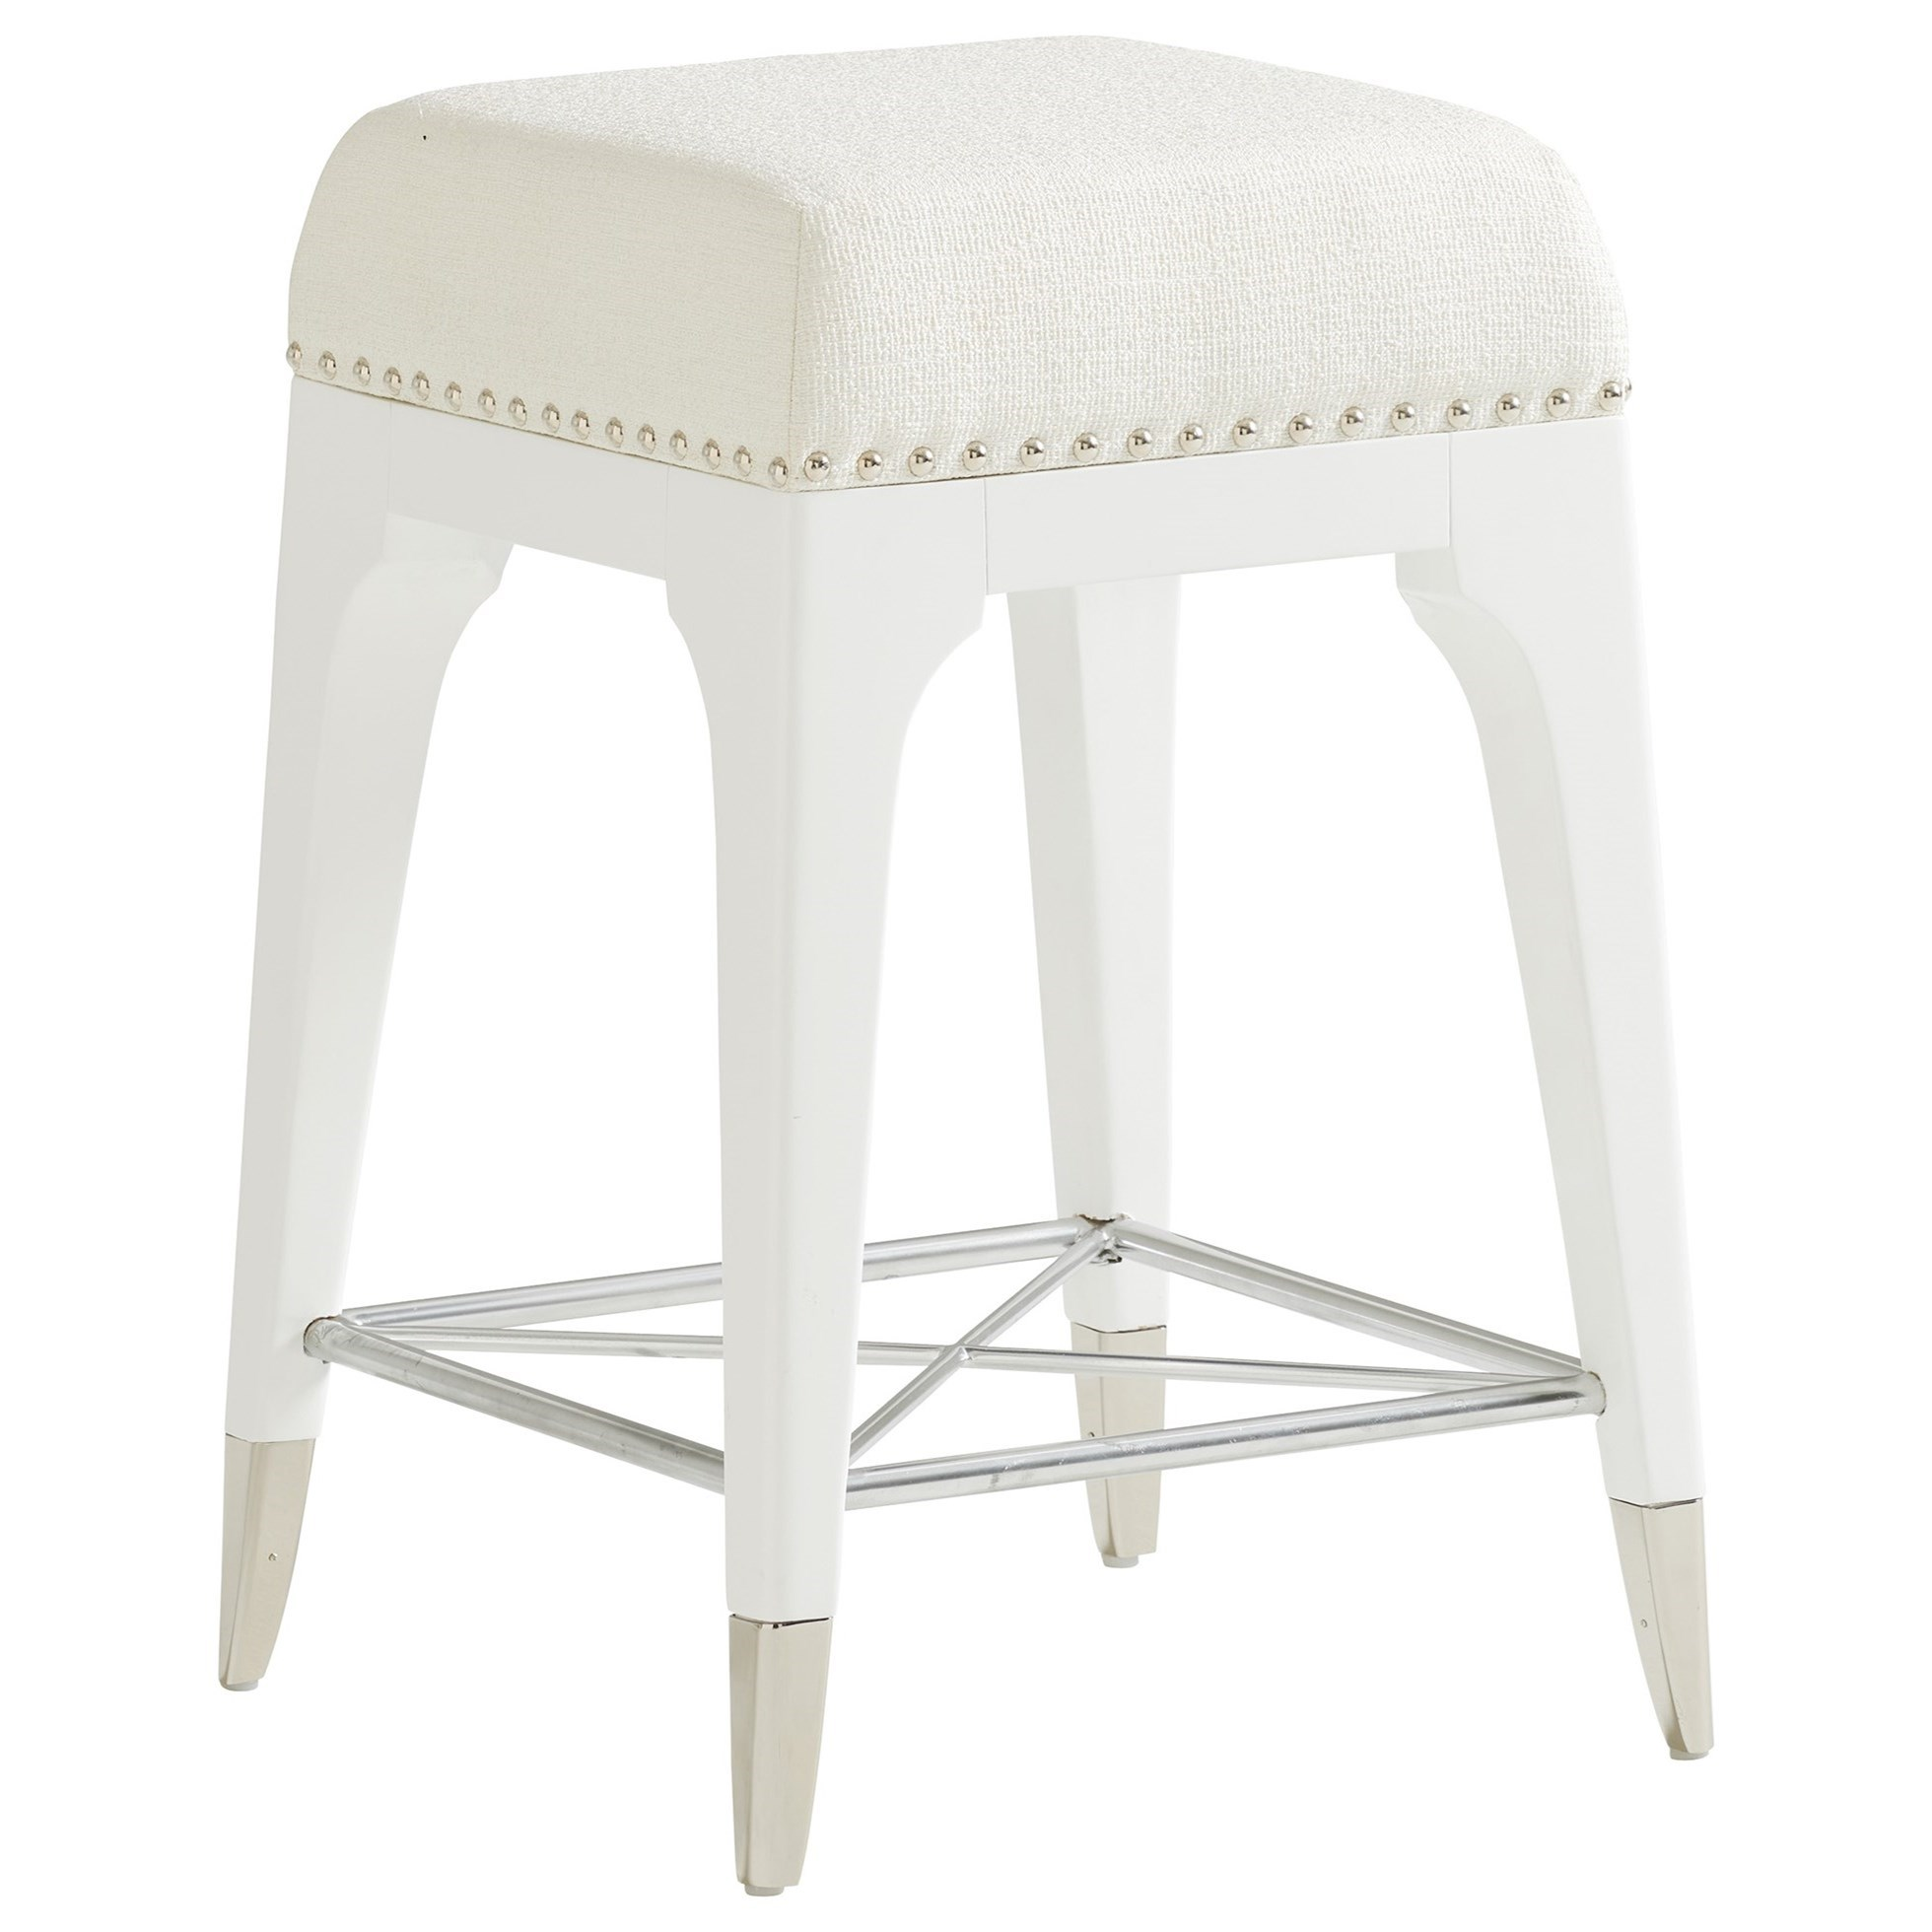 Avondale Northbrook Counter Stool by Lexington at Sprintz Furniture